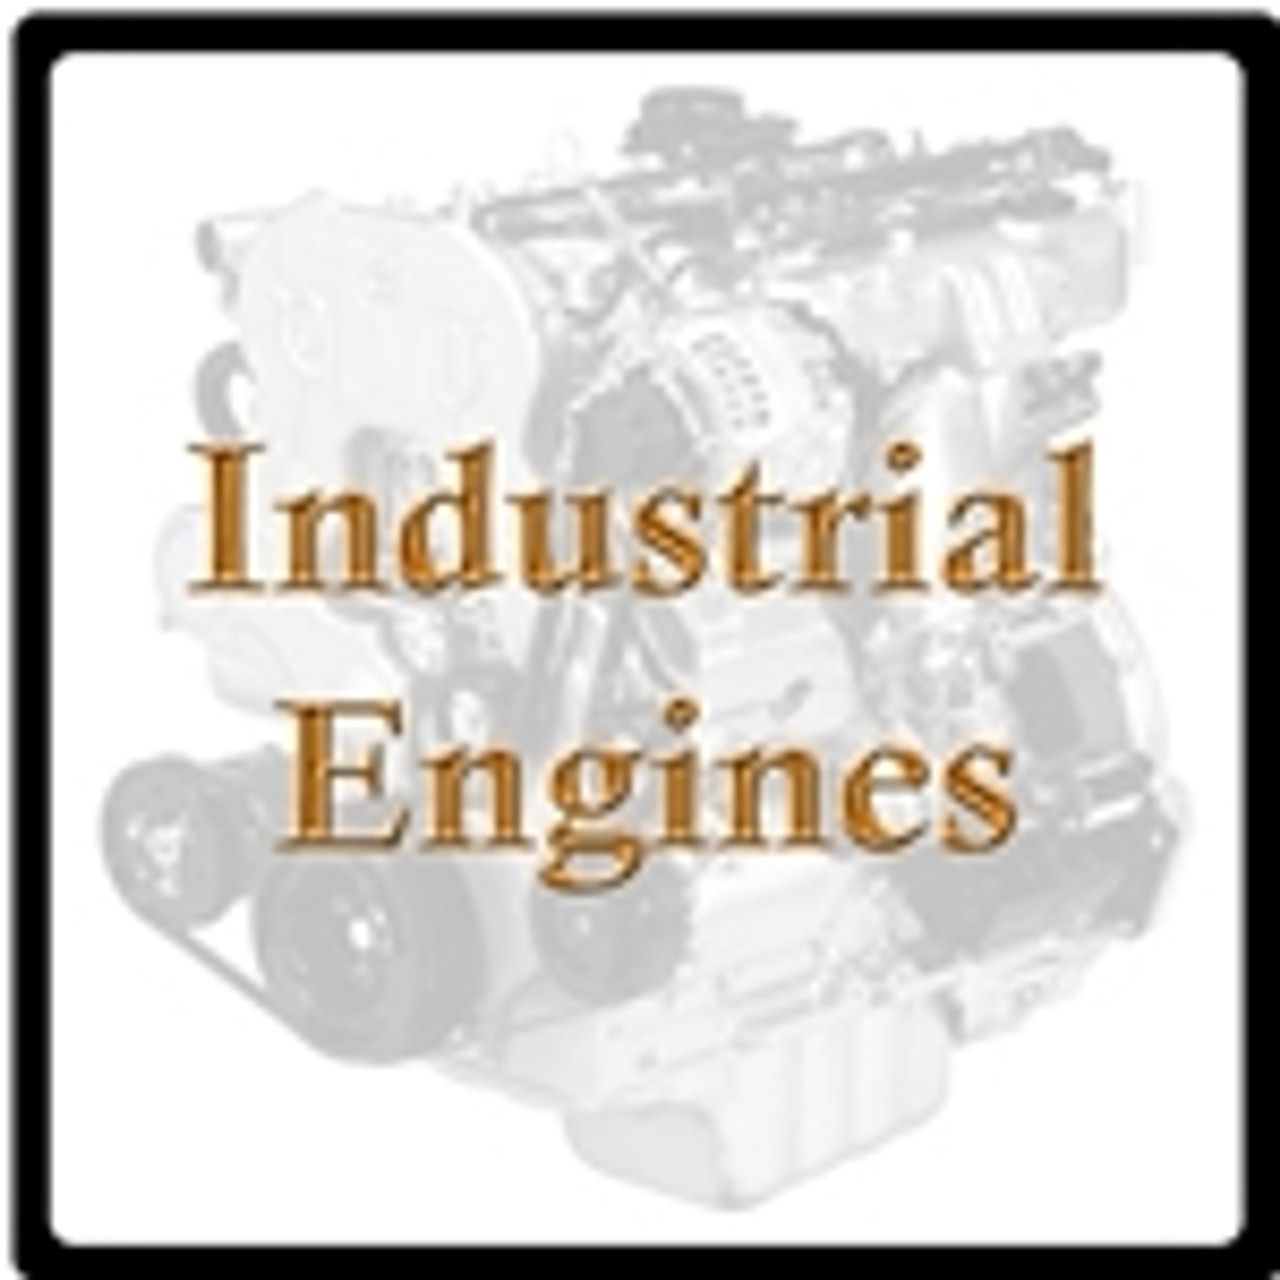 Industrial Engines